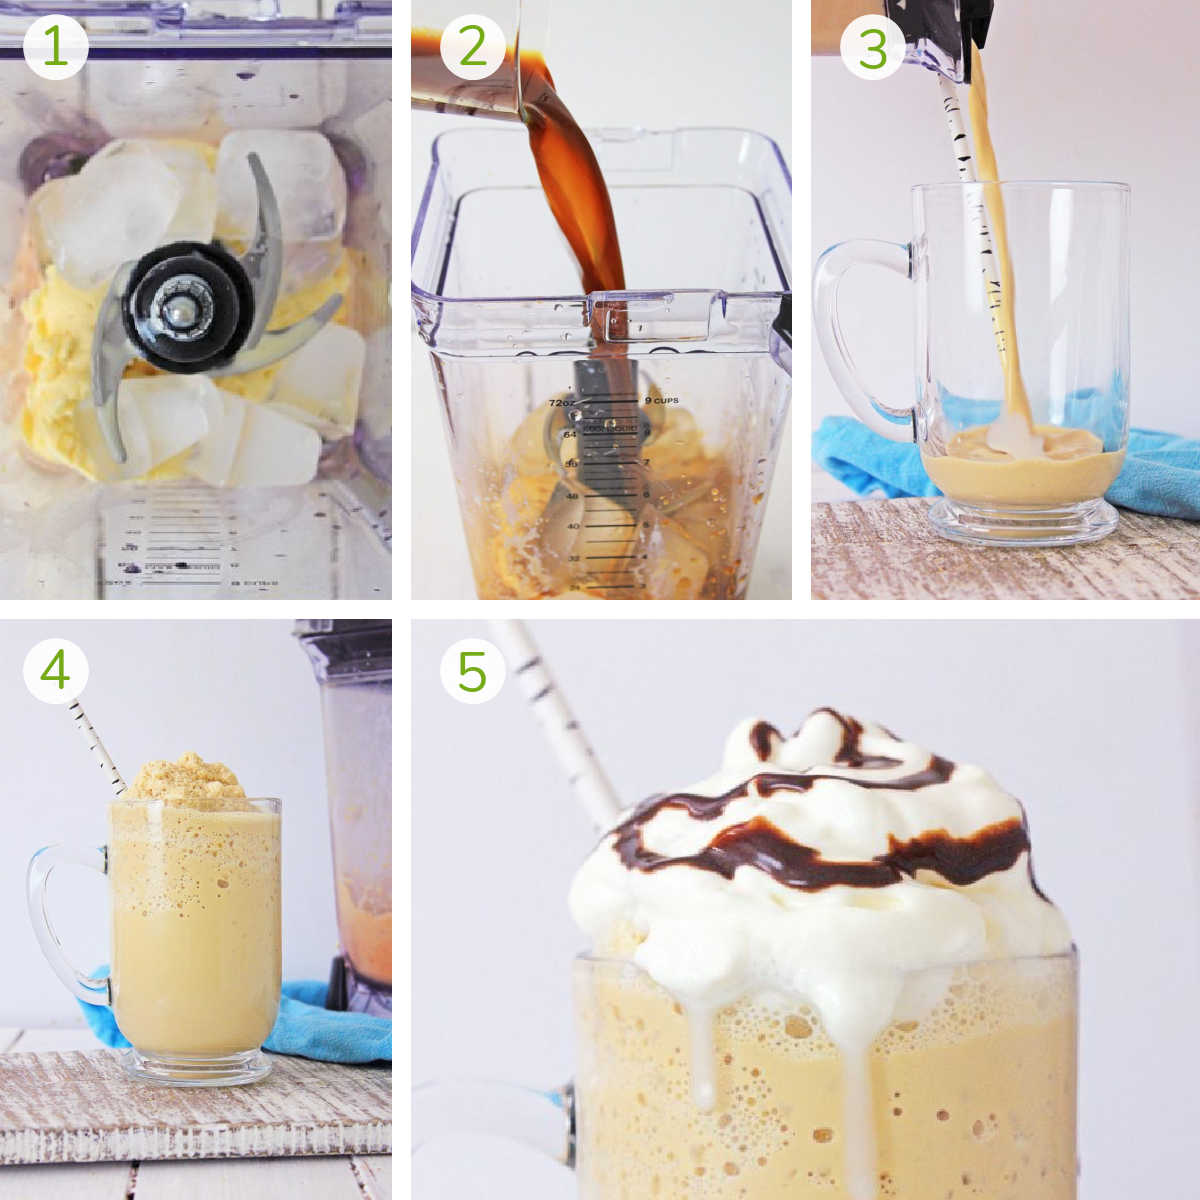 several process photos showing how to blend ice and ice cream, add in strong coffee, and finish making the vanilla Frappuccino